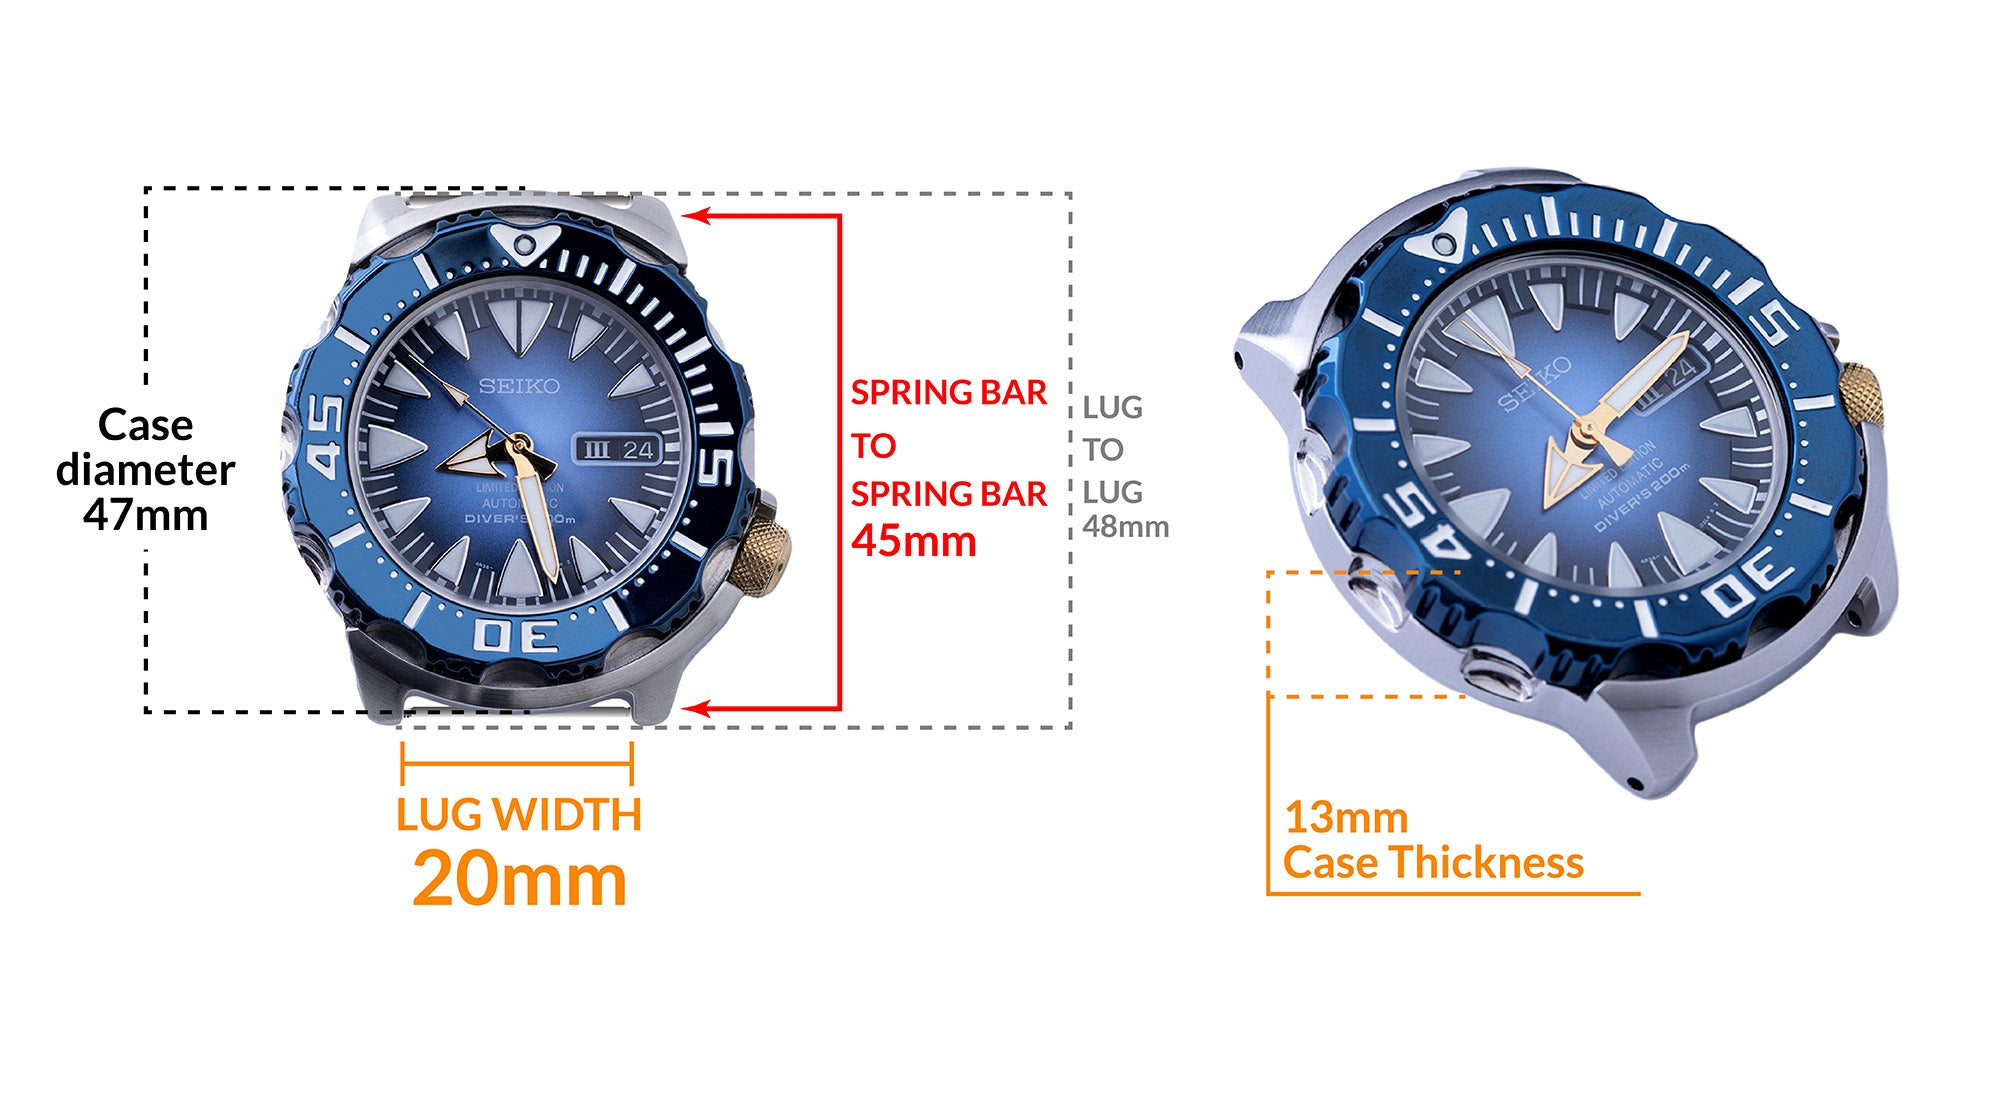 Seiko Monster, Seiko Blue Monster Limited Edition SRP455- Details Seiko watch size, Lug width and case dimensions